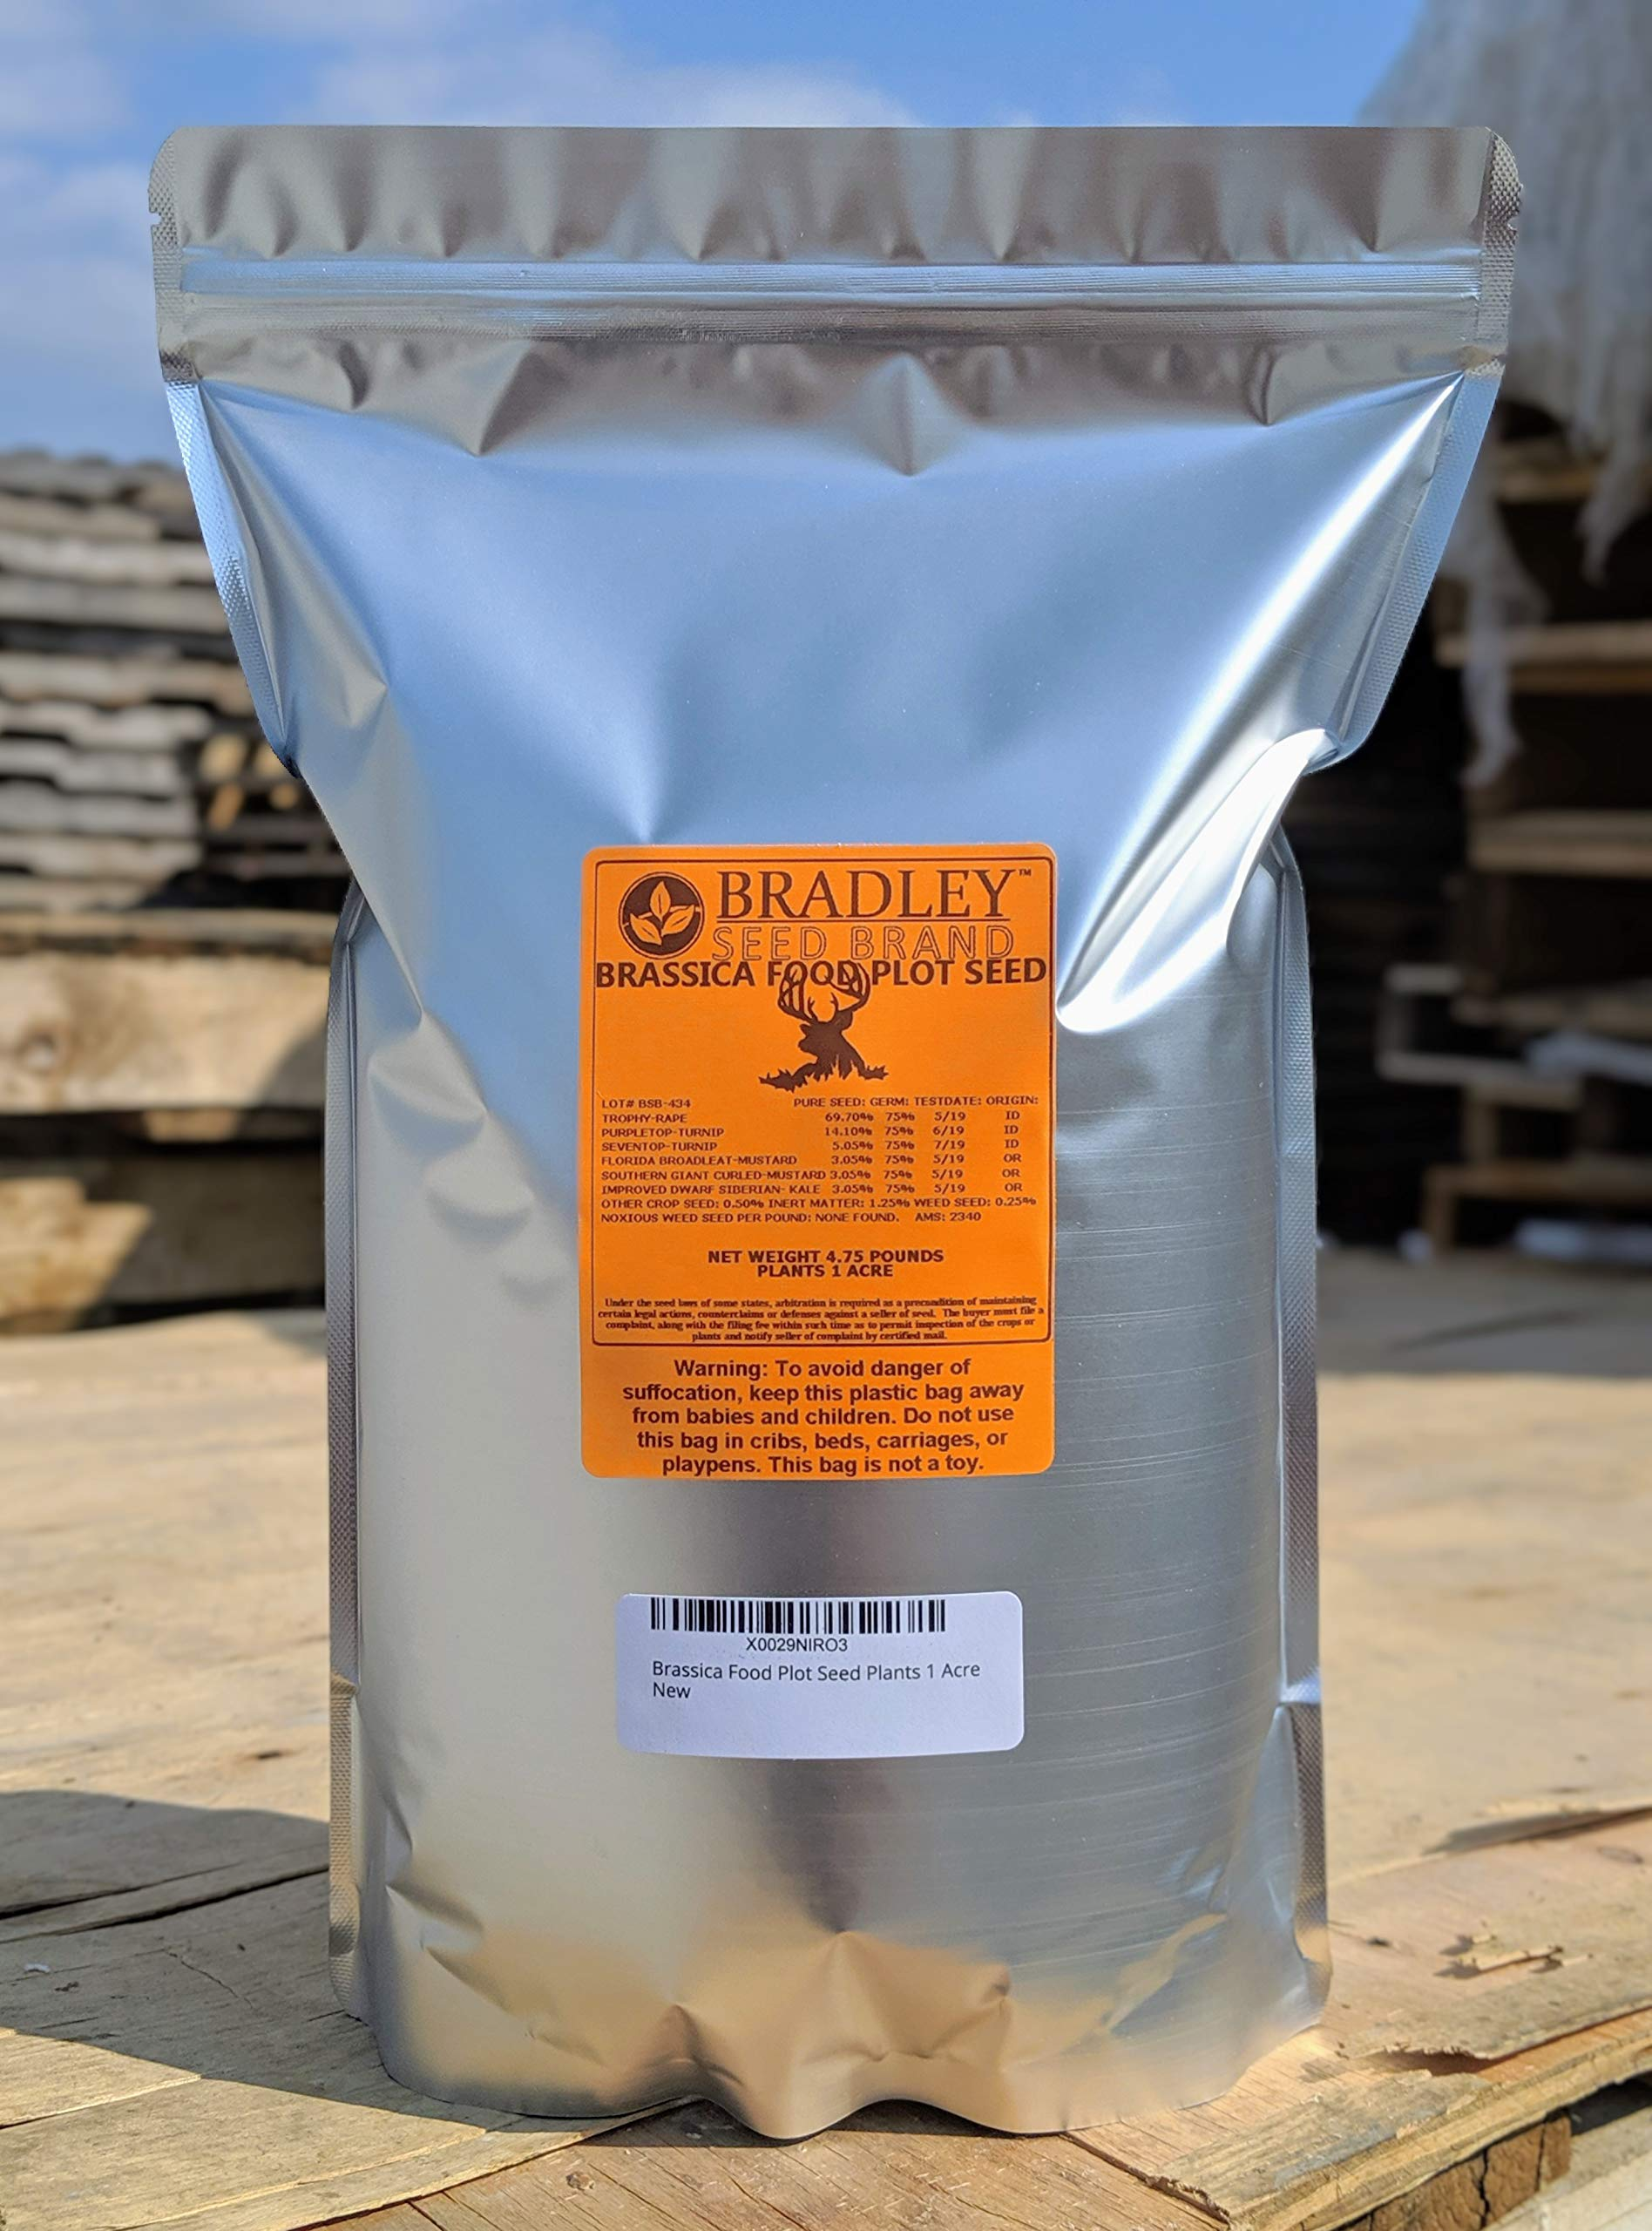 Brassica Food Plot Seed 4.75 lbs 1 Acre by Bradley Seed Brand